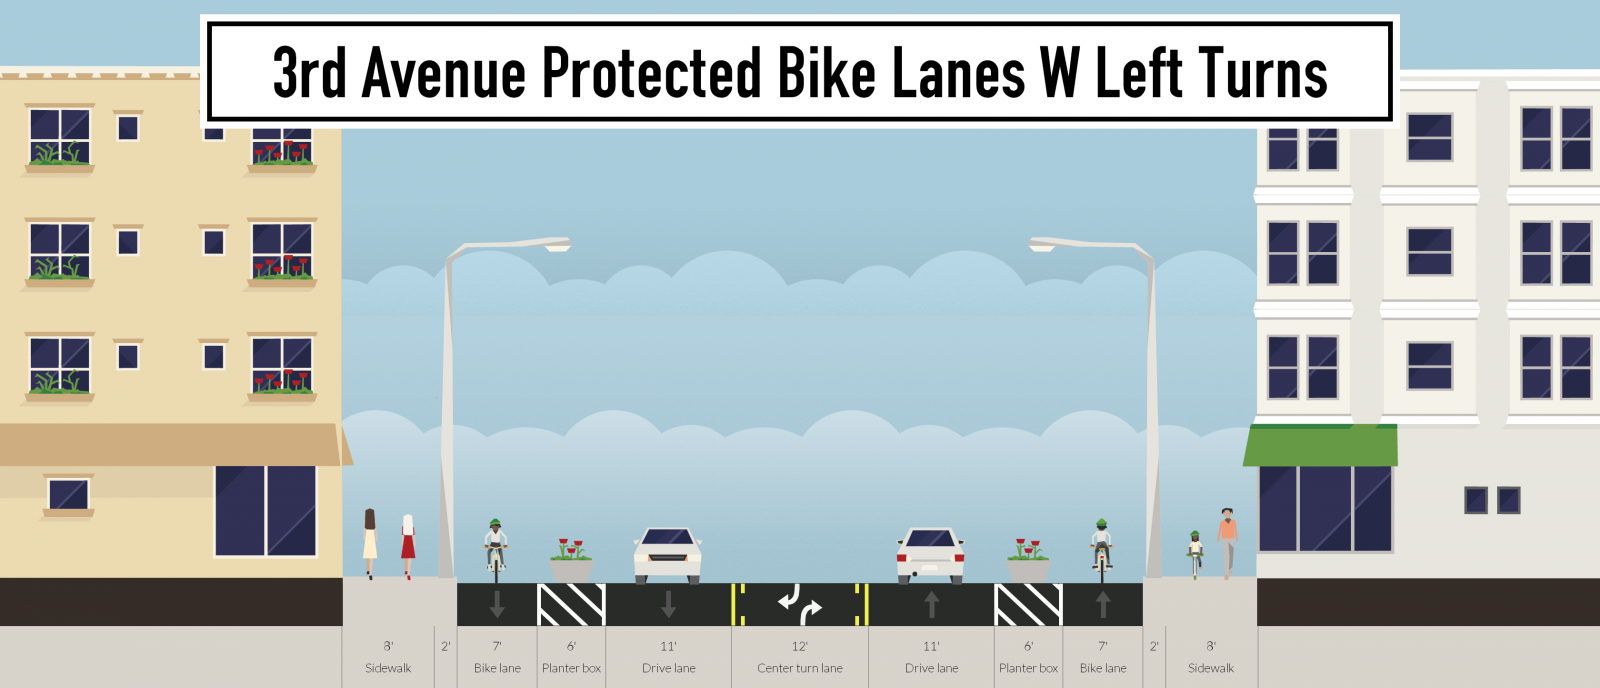 3rd-avenue-protected-bike-lanes-w-left-turns.png